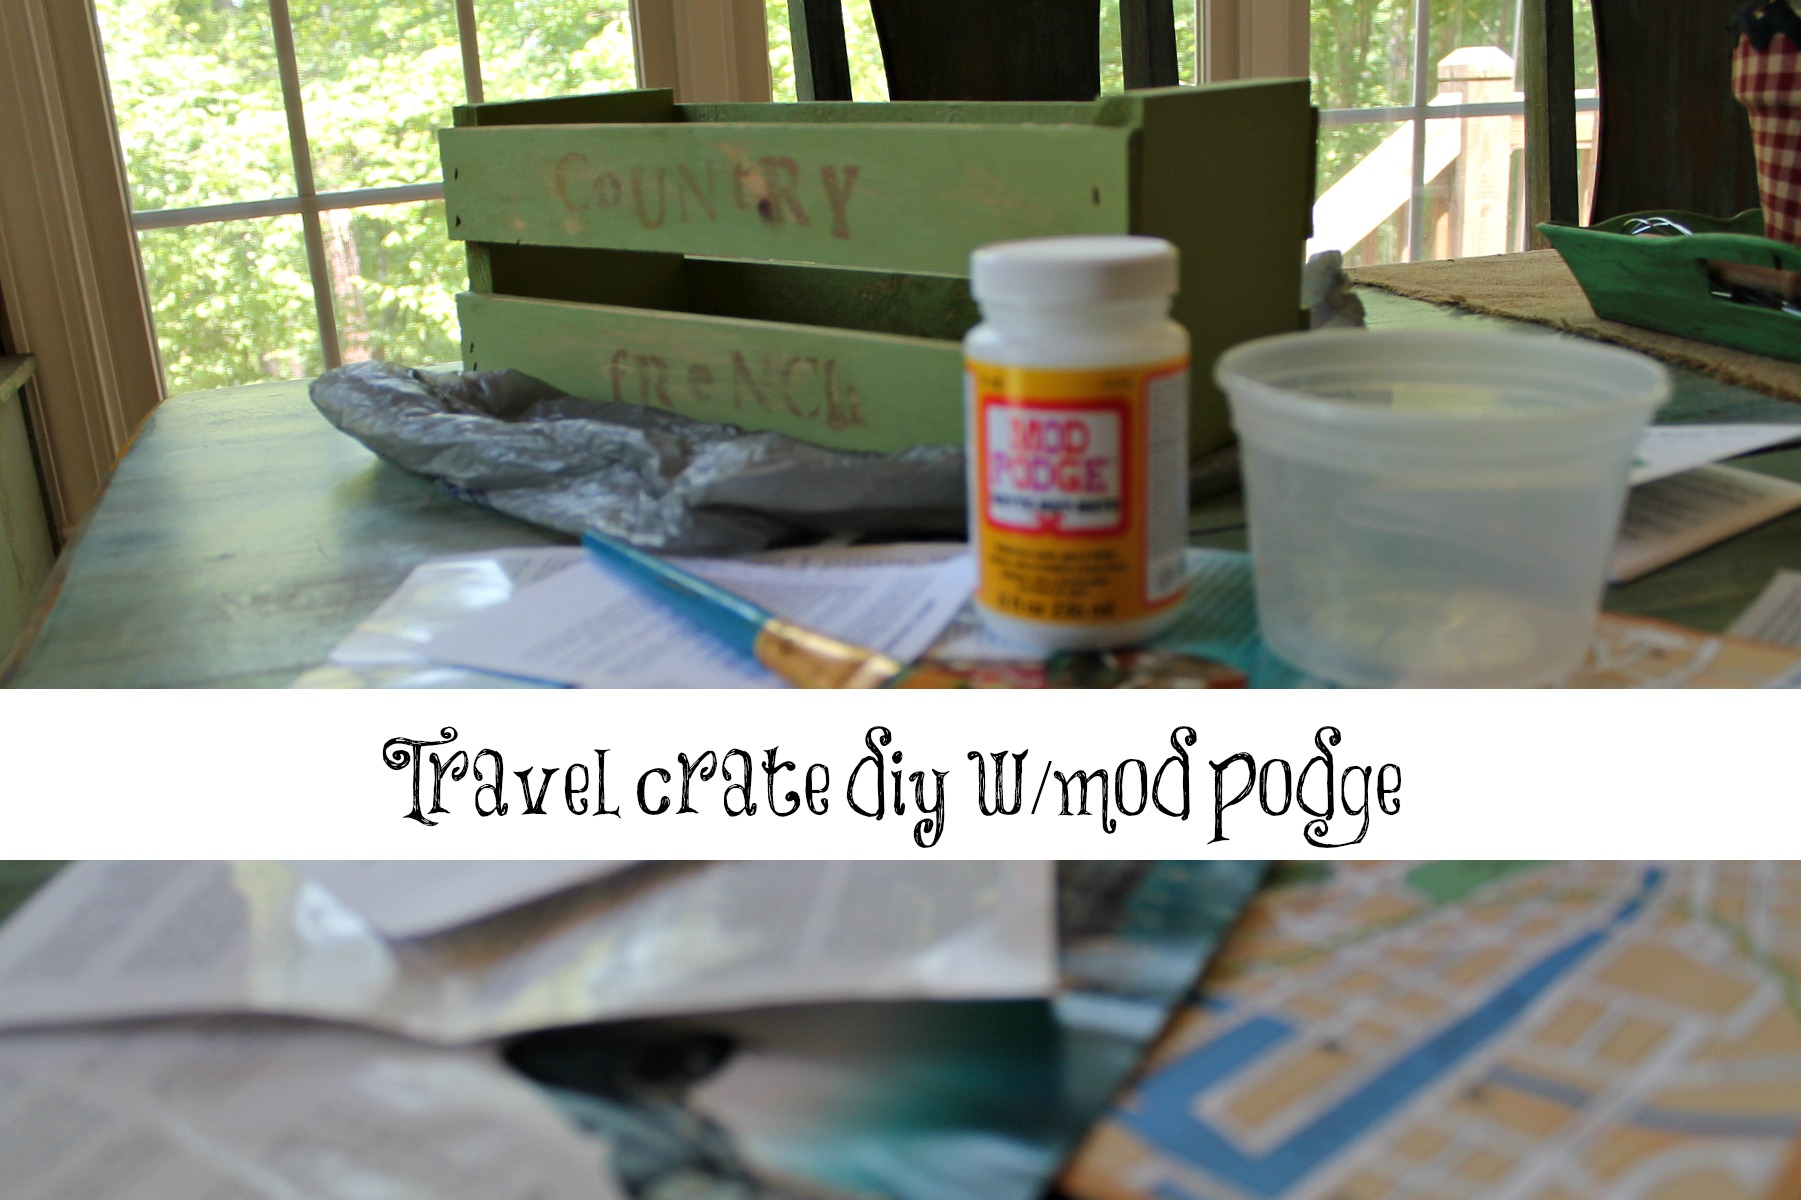 Travel crate with mod podge